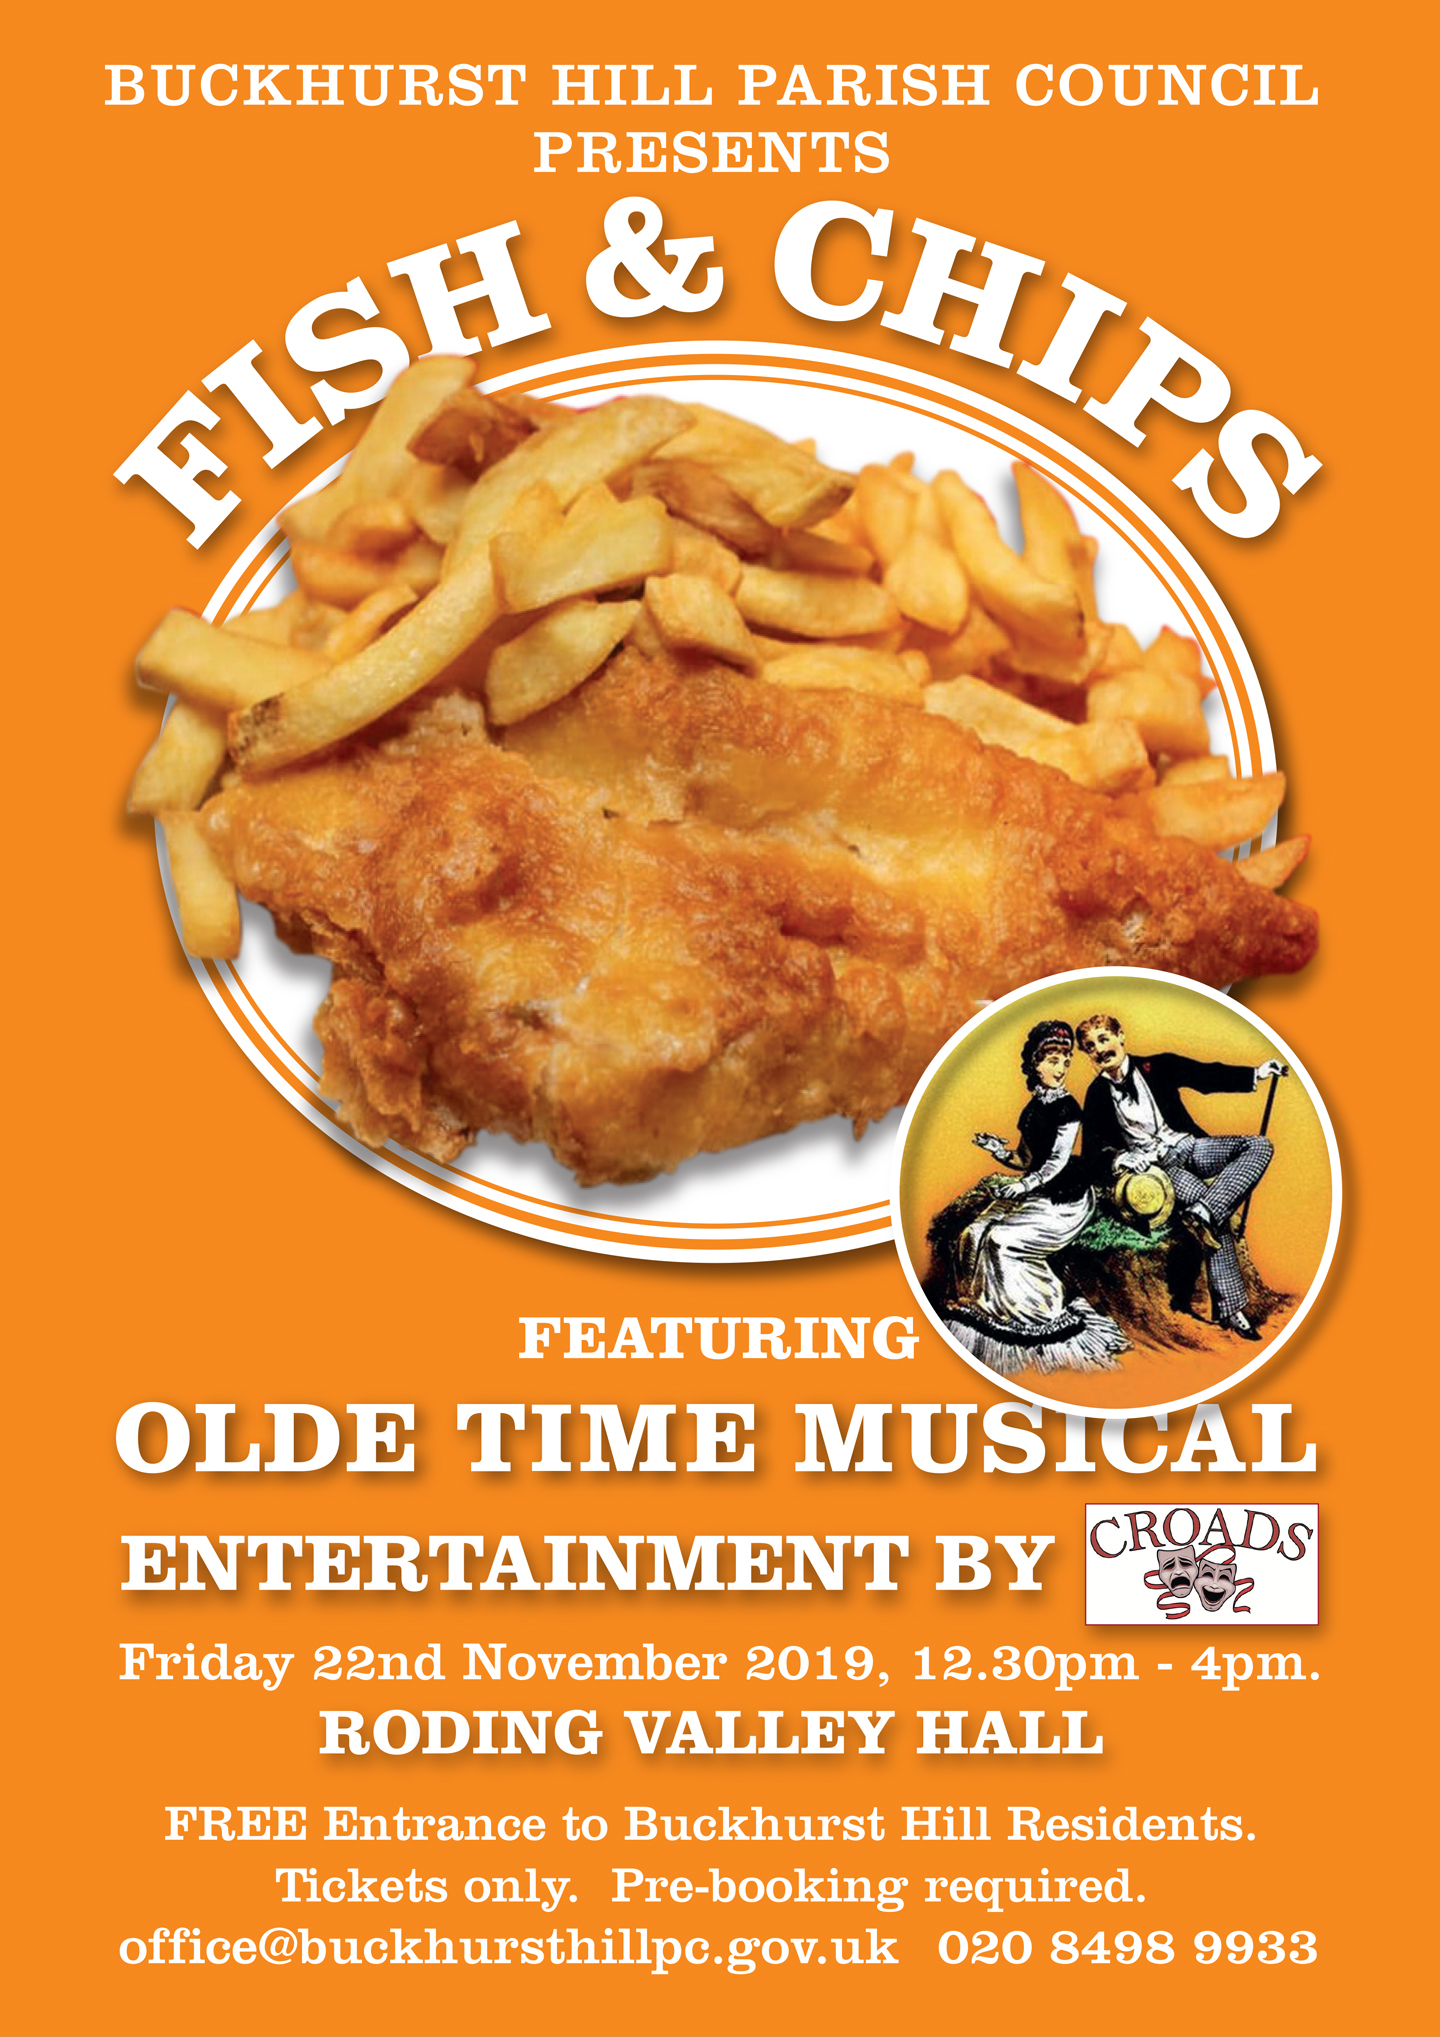 OLDE TIME MUSICAL Buckhurst Hill